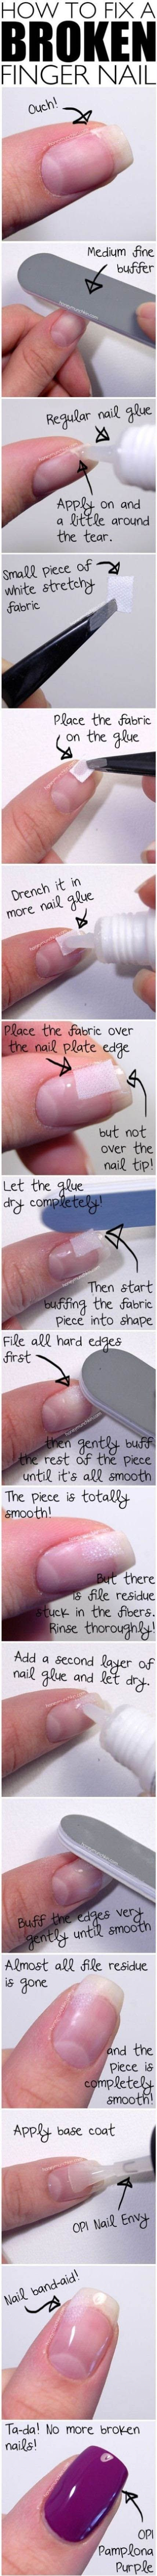 The next time your nail breaks, don't panic. There are several tricks you can use to fix the damage.